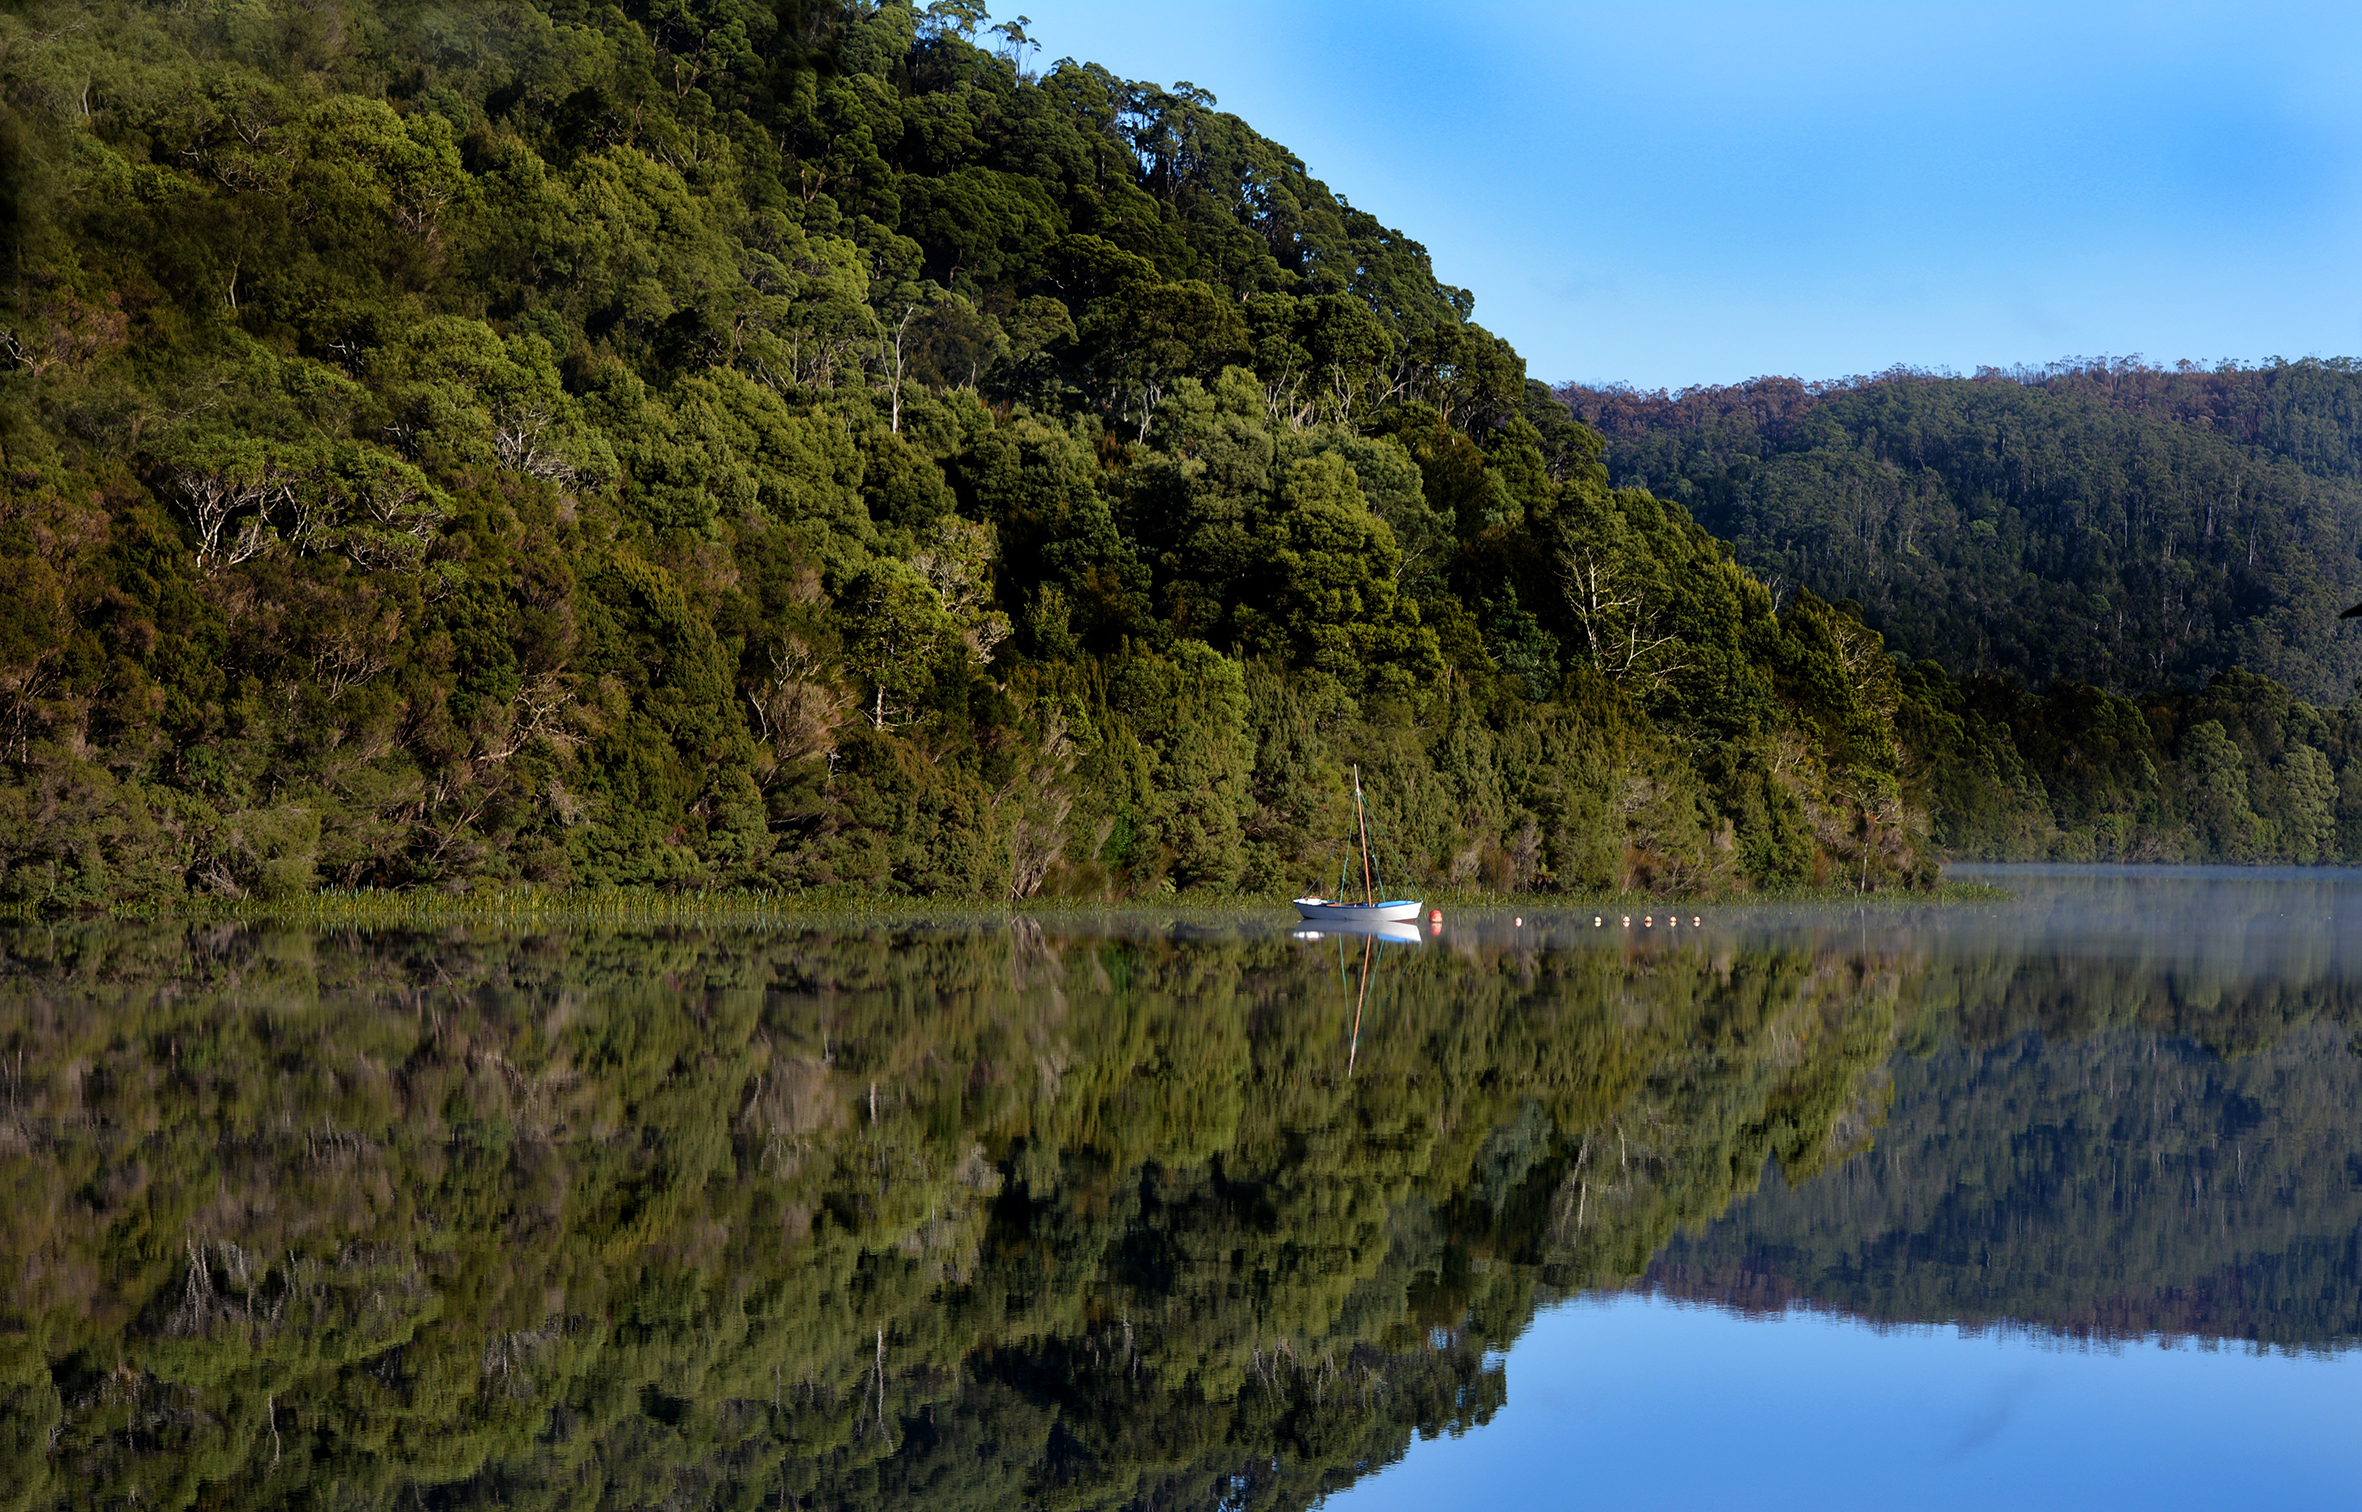 Reflections on the Pieman River, Corinna